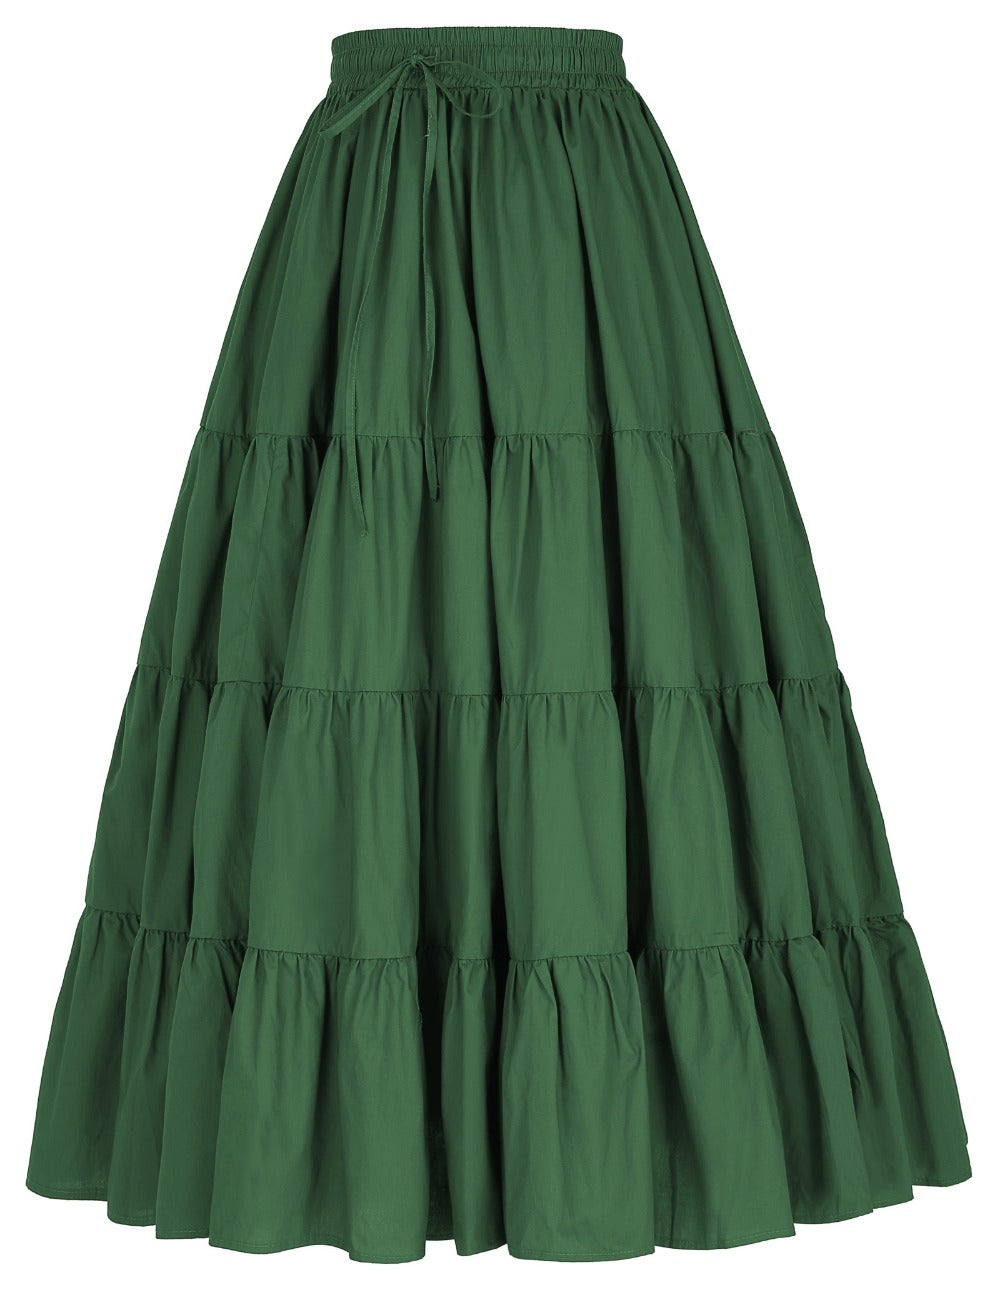 Vintage Ball Gown Maxi Petticoat